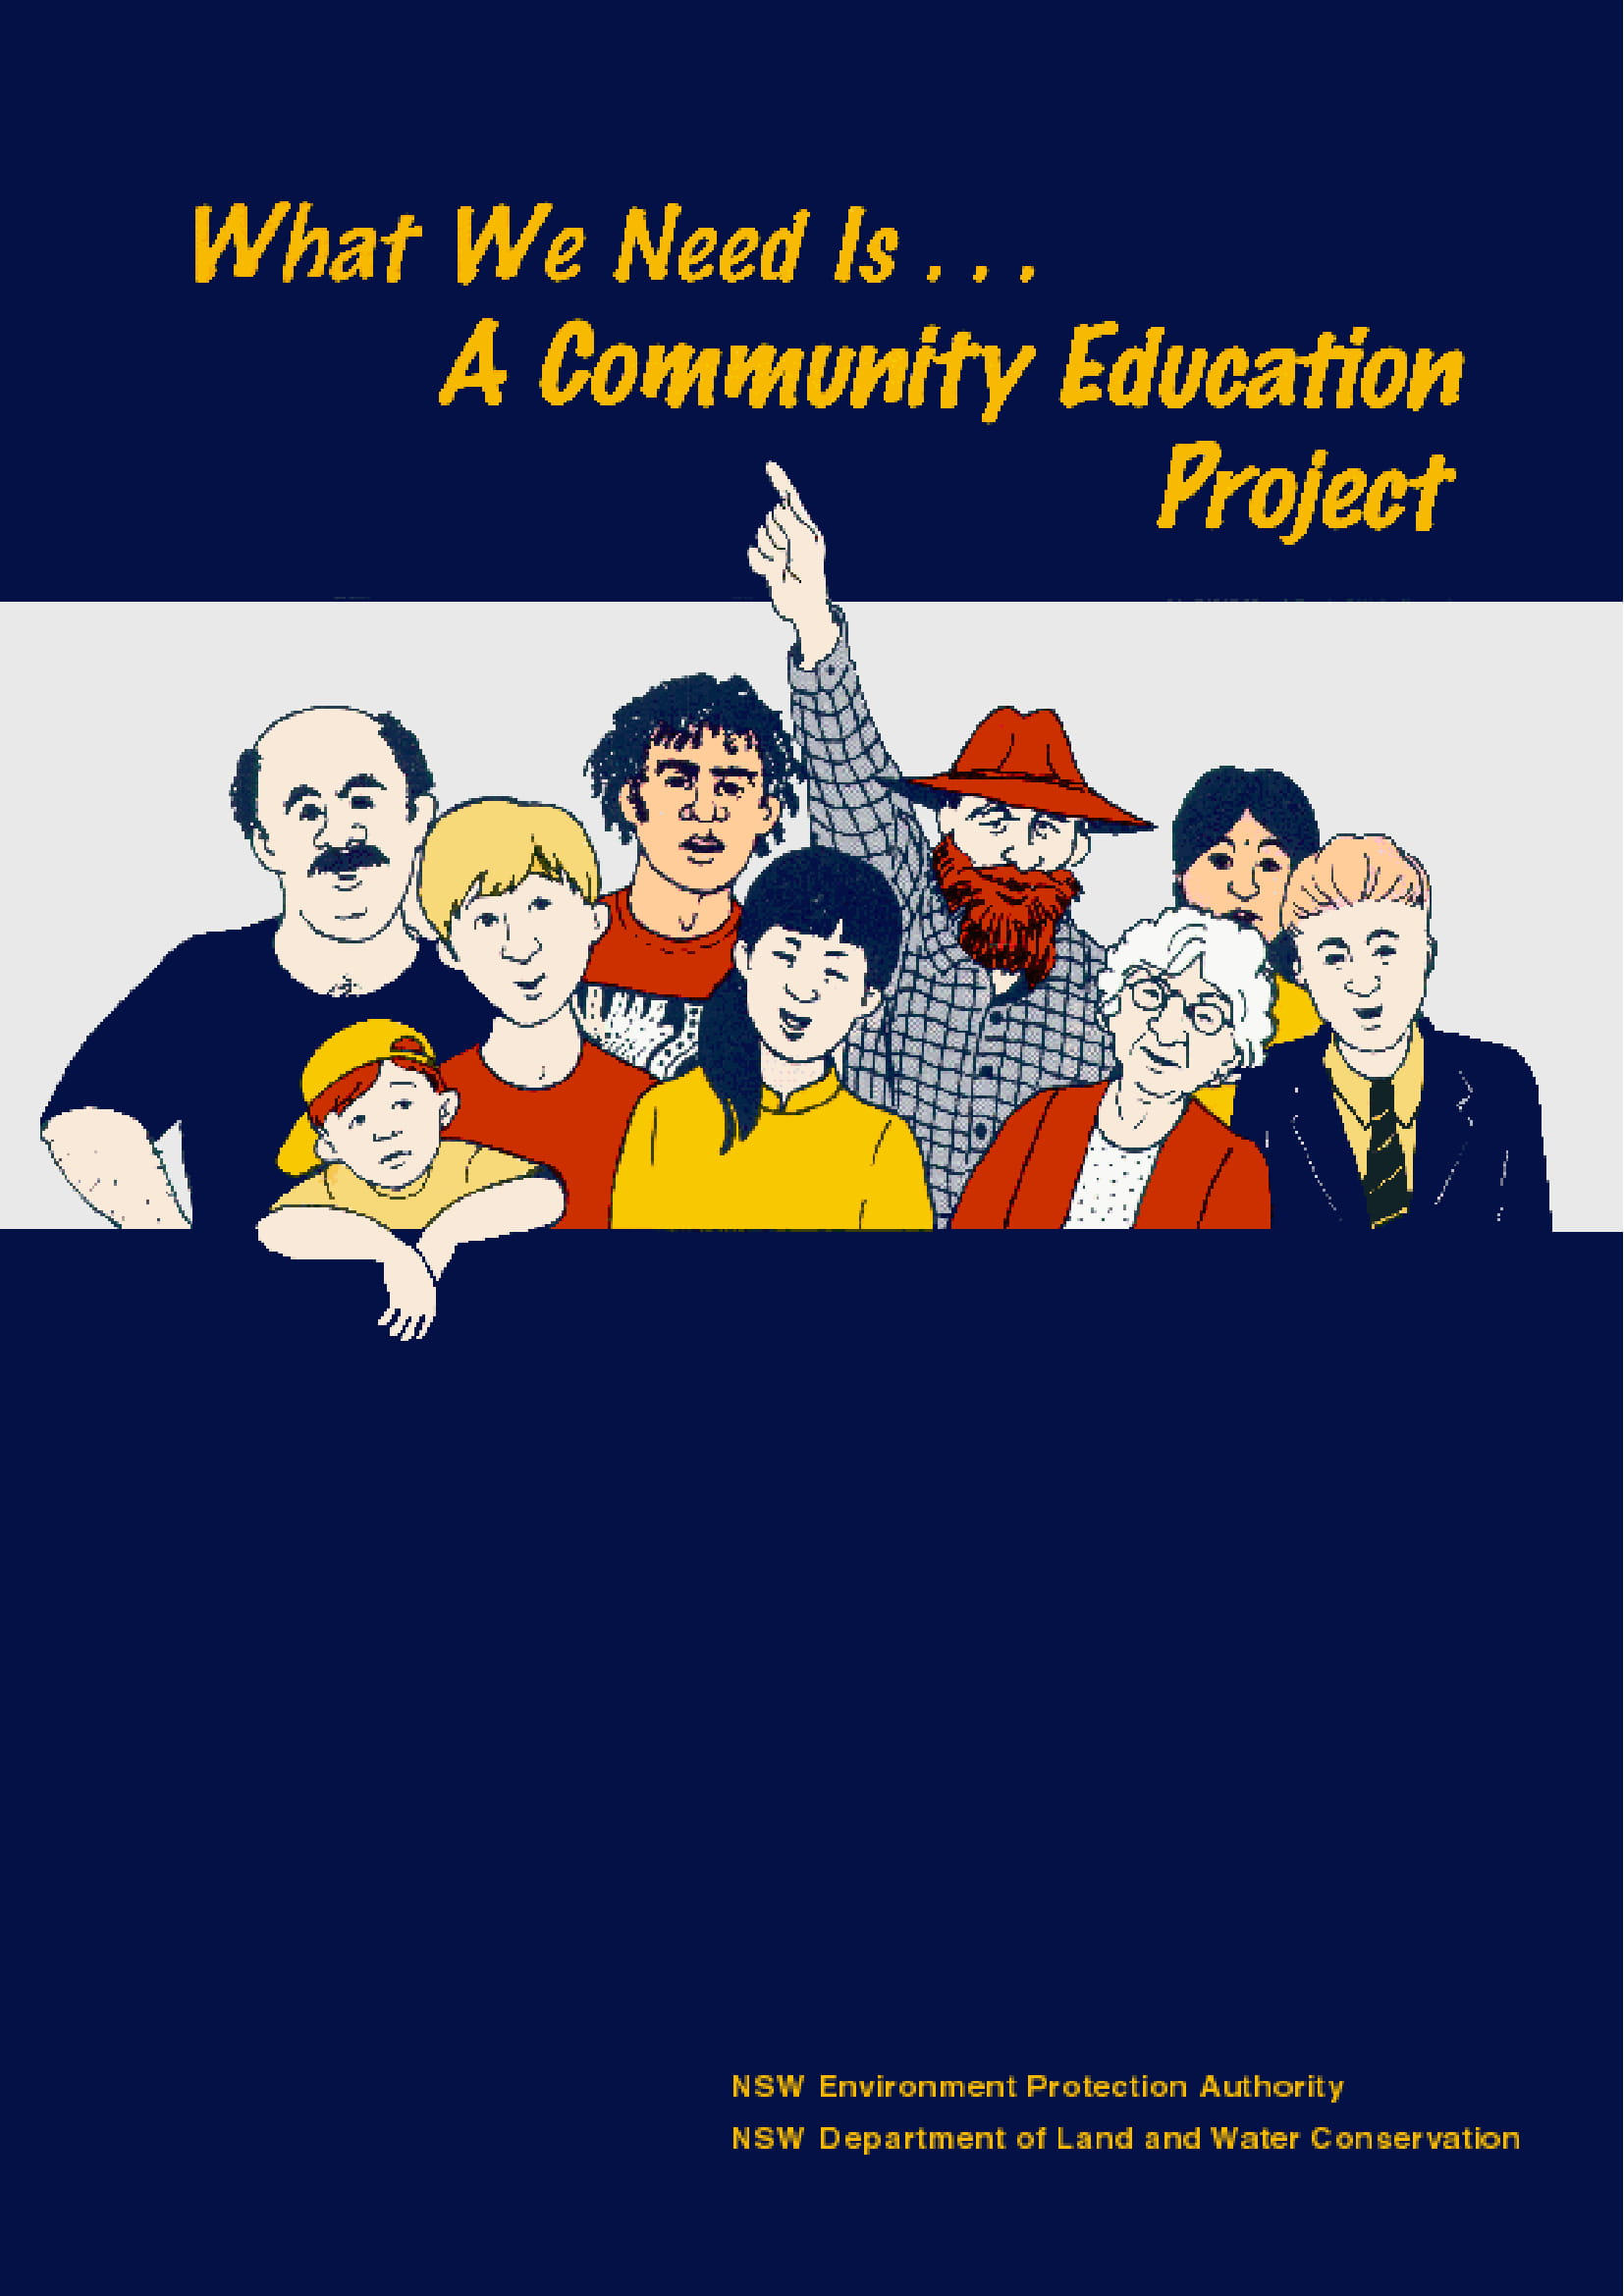 community education project action plan example 01